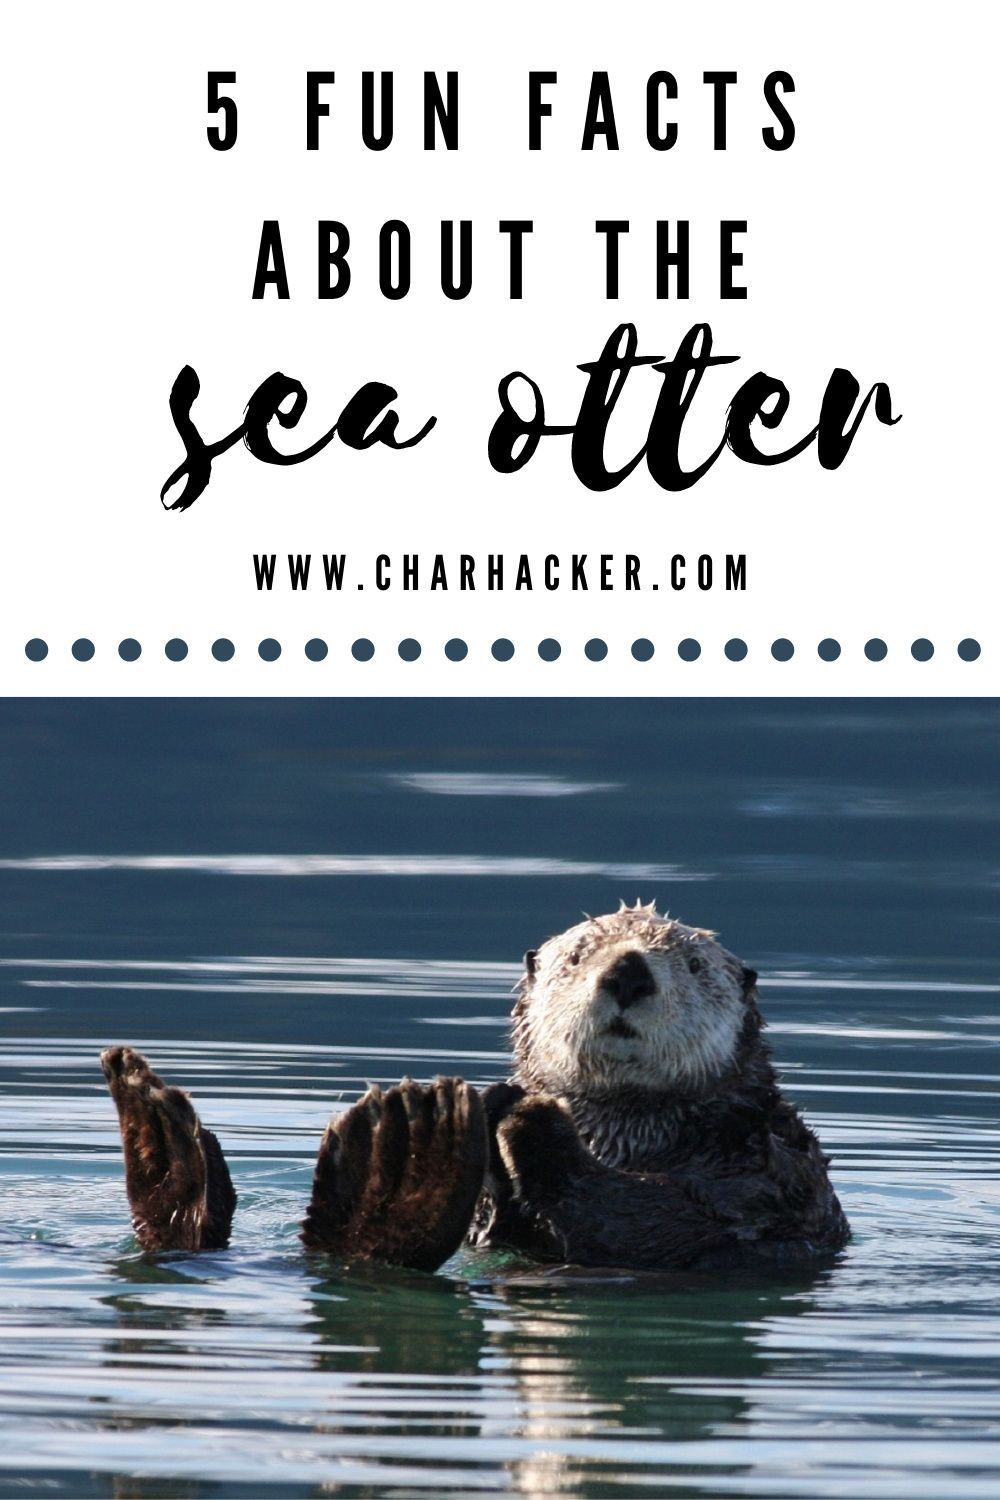 Did you know otters have built in pockets to keep their snacks? OR that they hang onto each other while floating to all stay together? Click to learn even more cool facts about this interesting species!     #conservation #marinelife #marinemammals #mammals #ocean  #endangered #species #wildlife